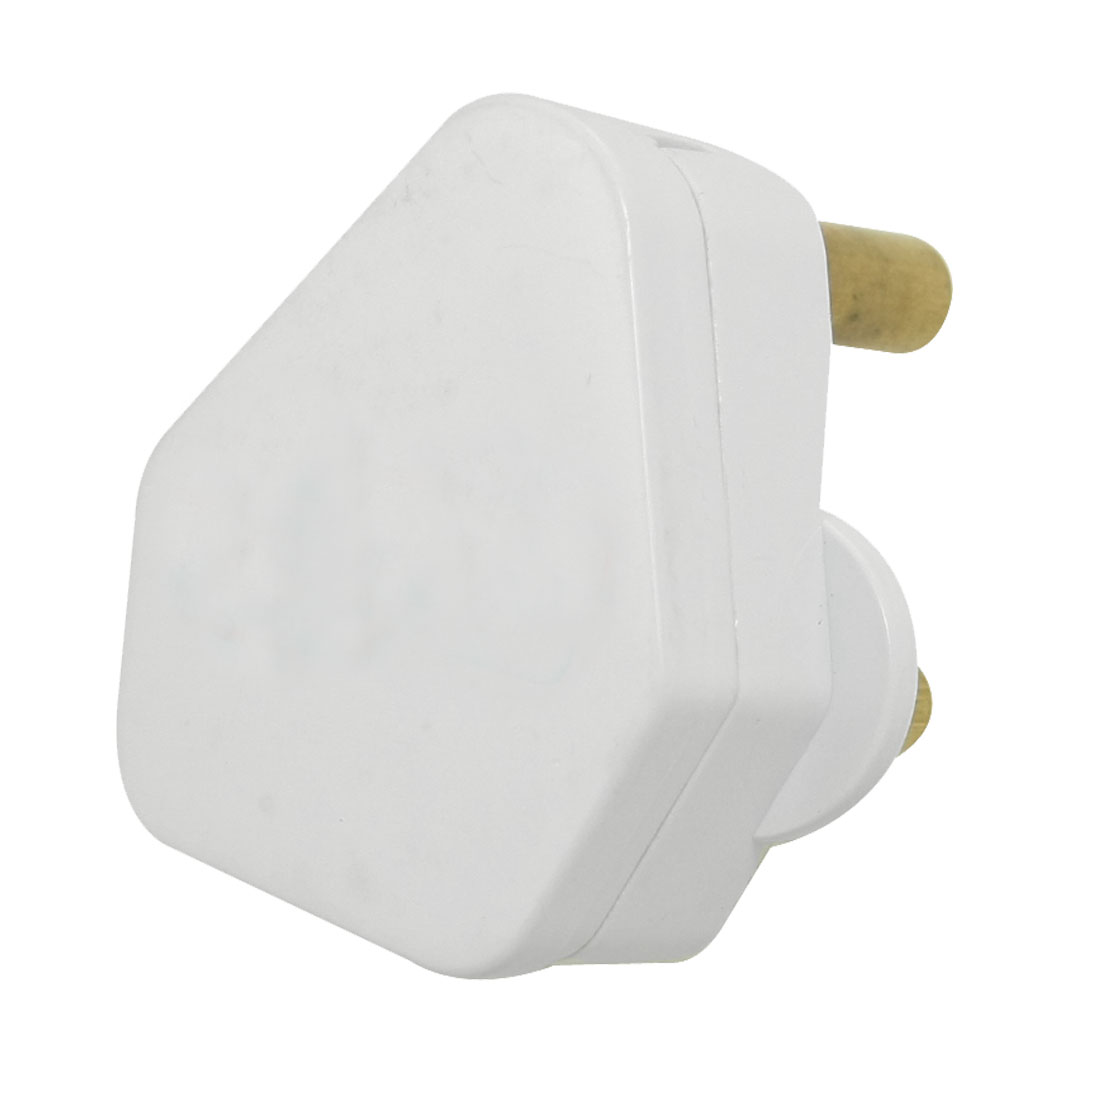 Large South Africa Plug White Shell AC 250V 15A Power Adapter